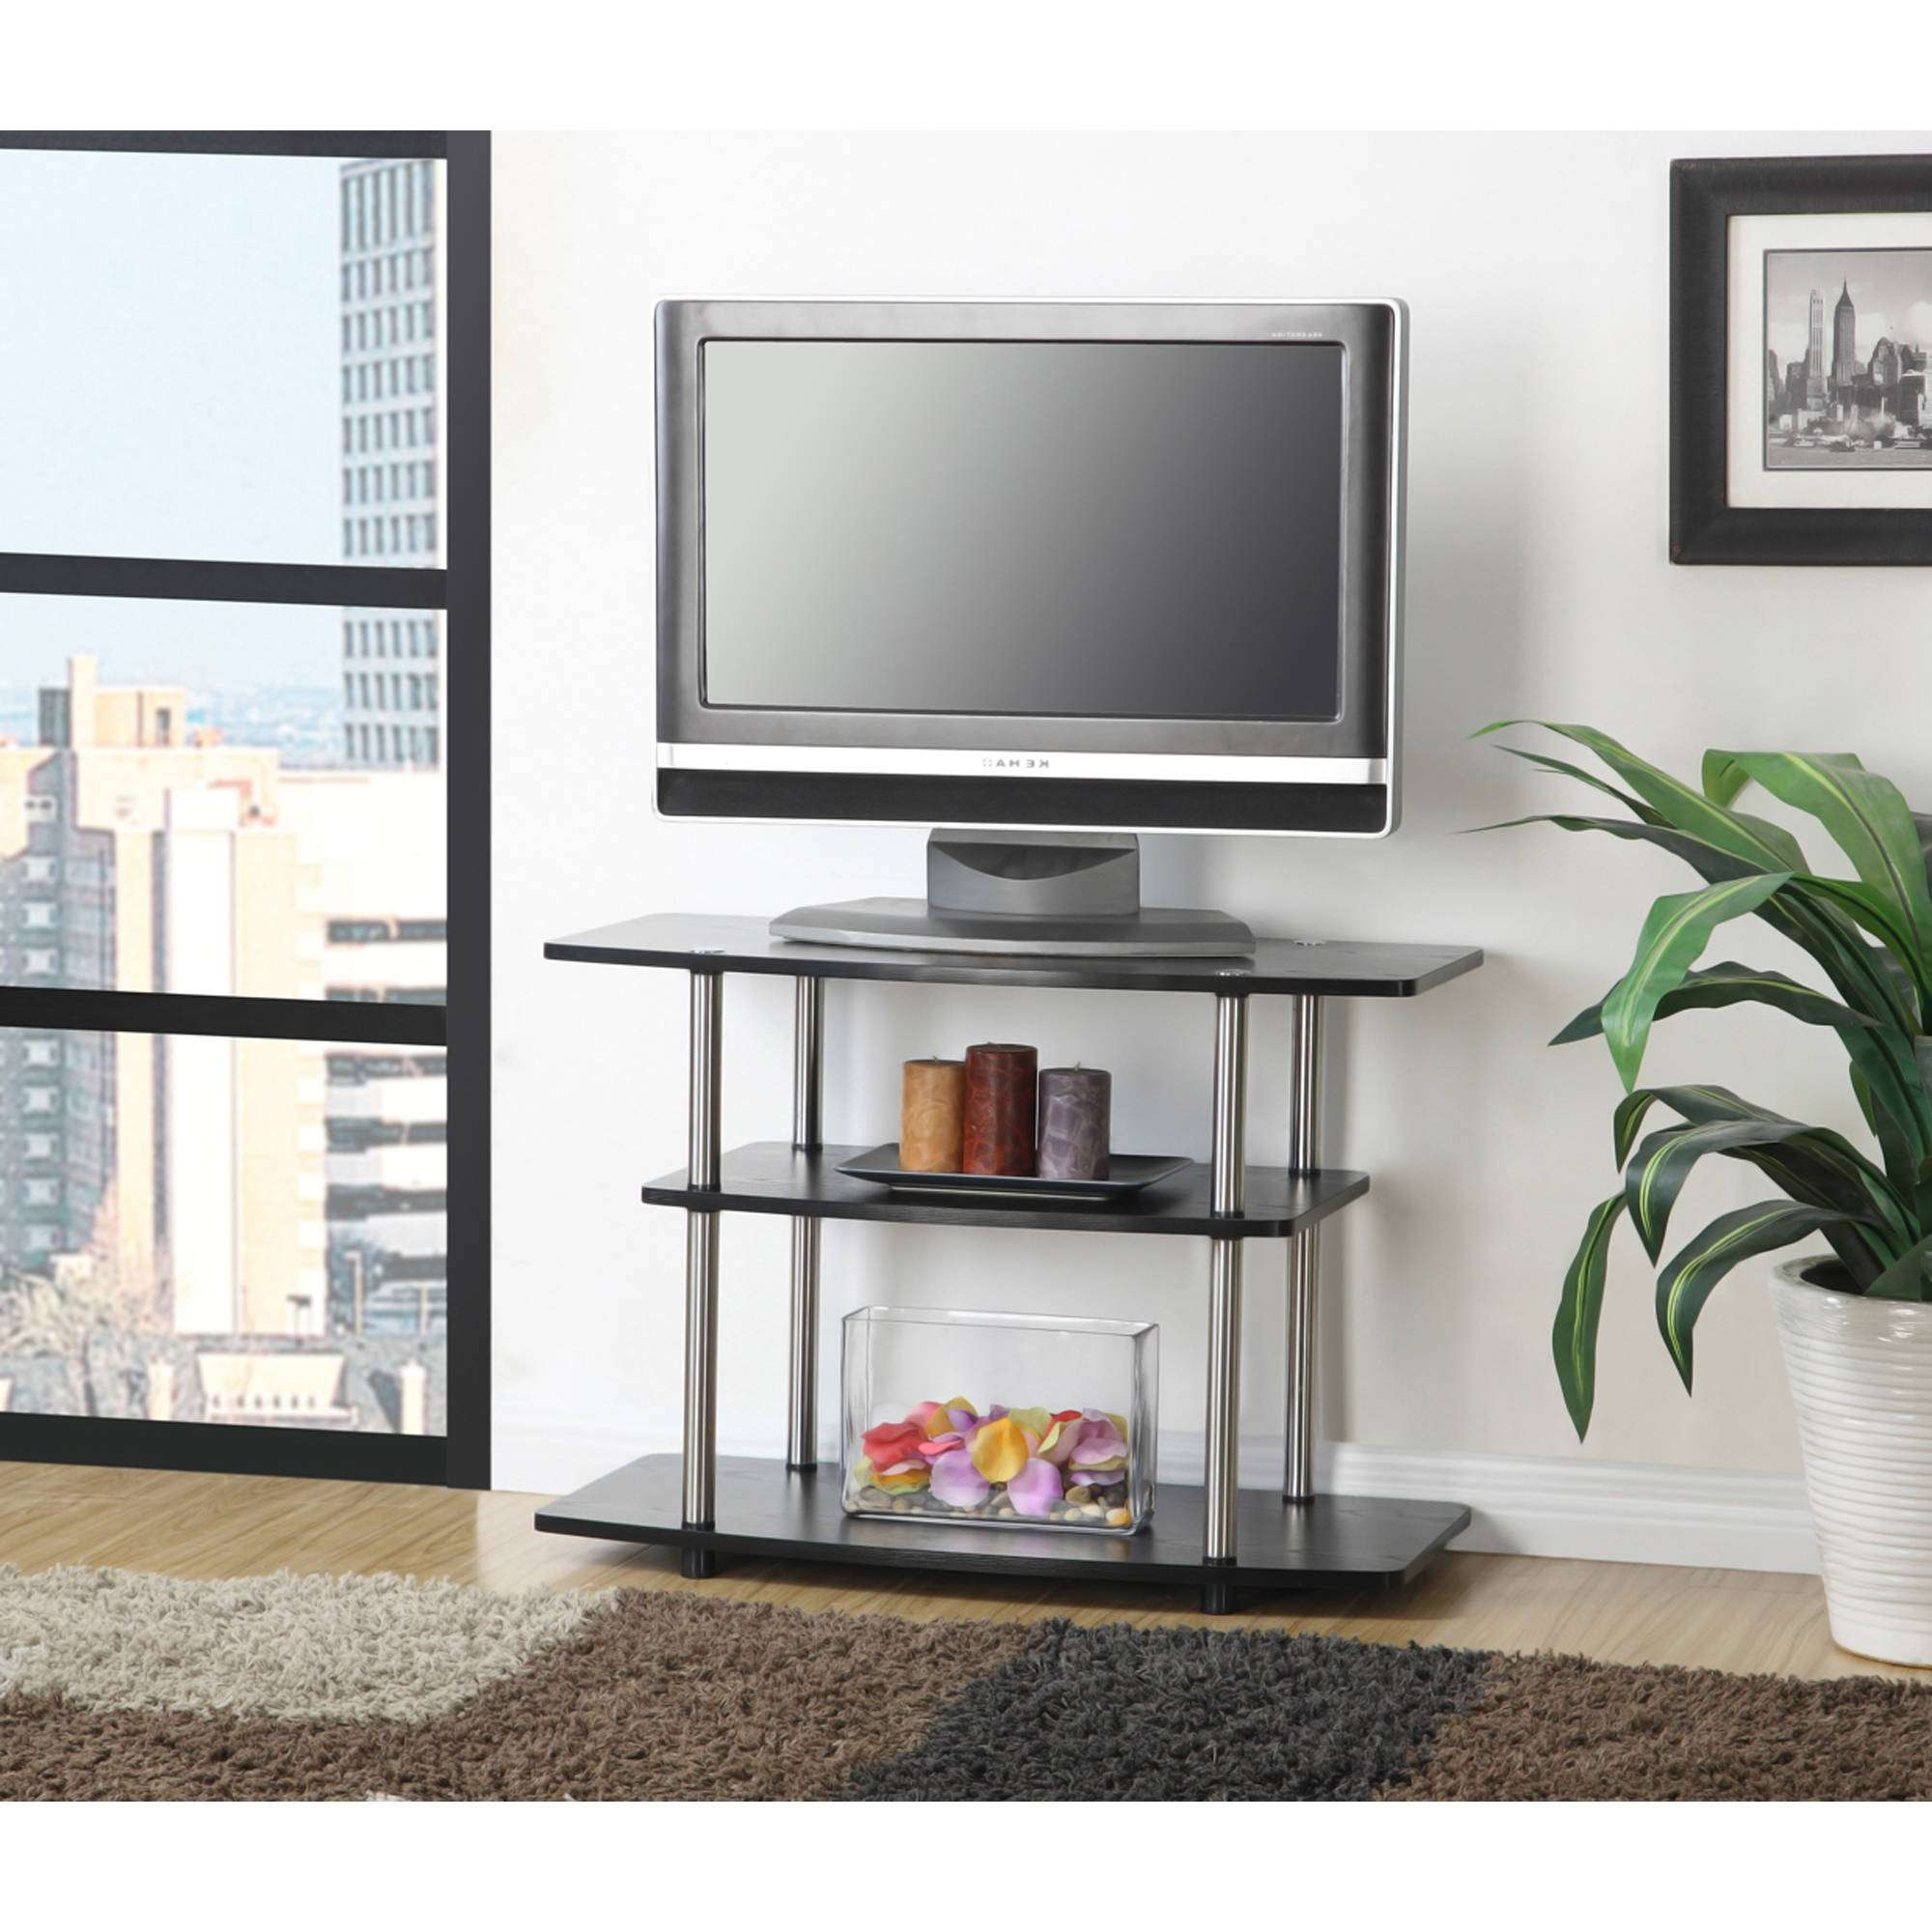 Bedroom : Floating Tv Shelf Tall Television Cabinets 34 Inch Tv Inside Tv Stands For Small Rooms (View 2 of 15)